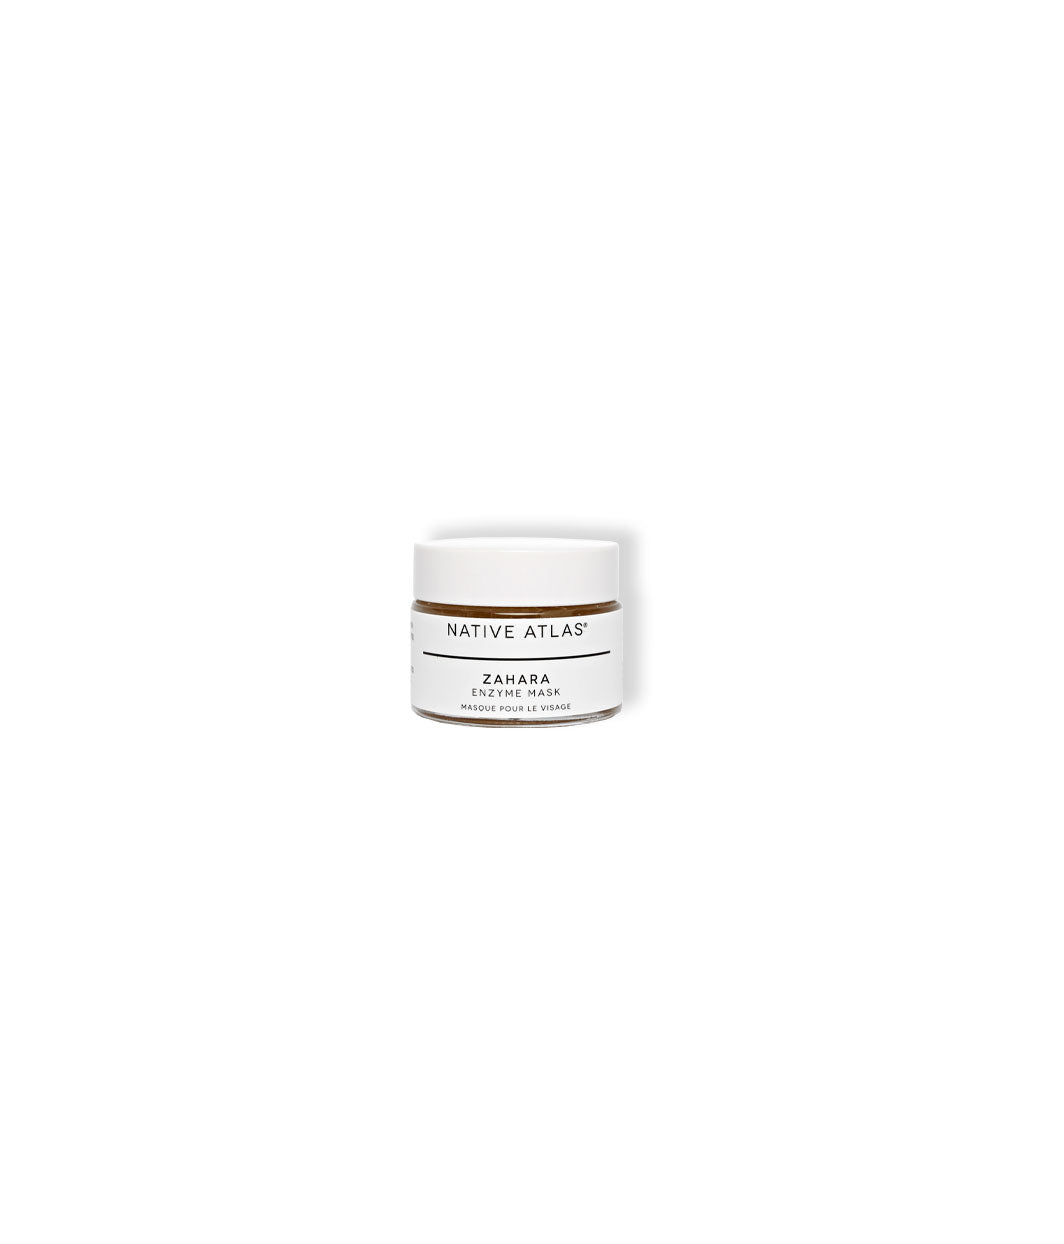 Zahara Enzyme Mask - LEMON LAINE - Masks - Native Atlas